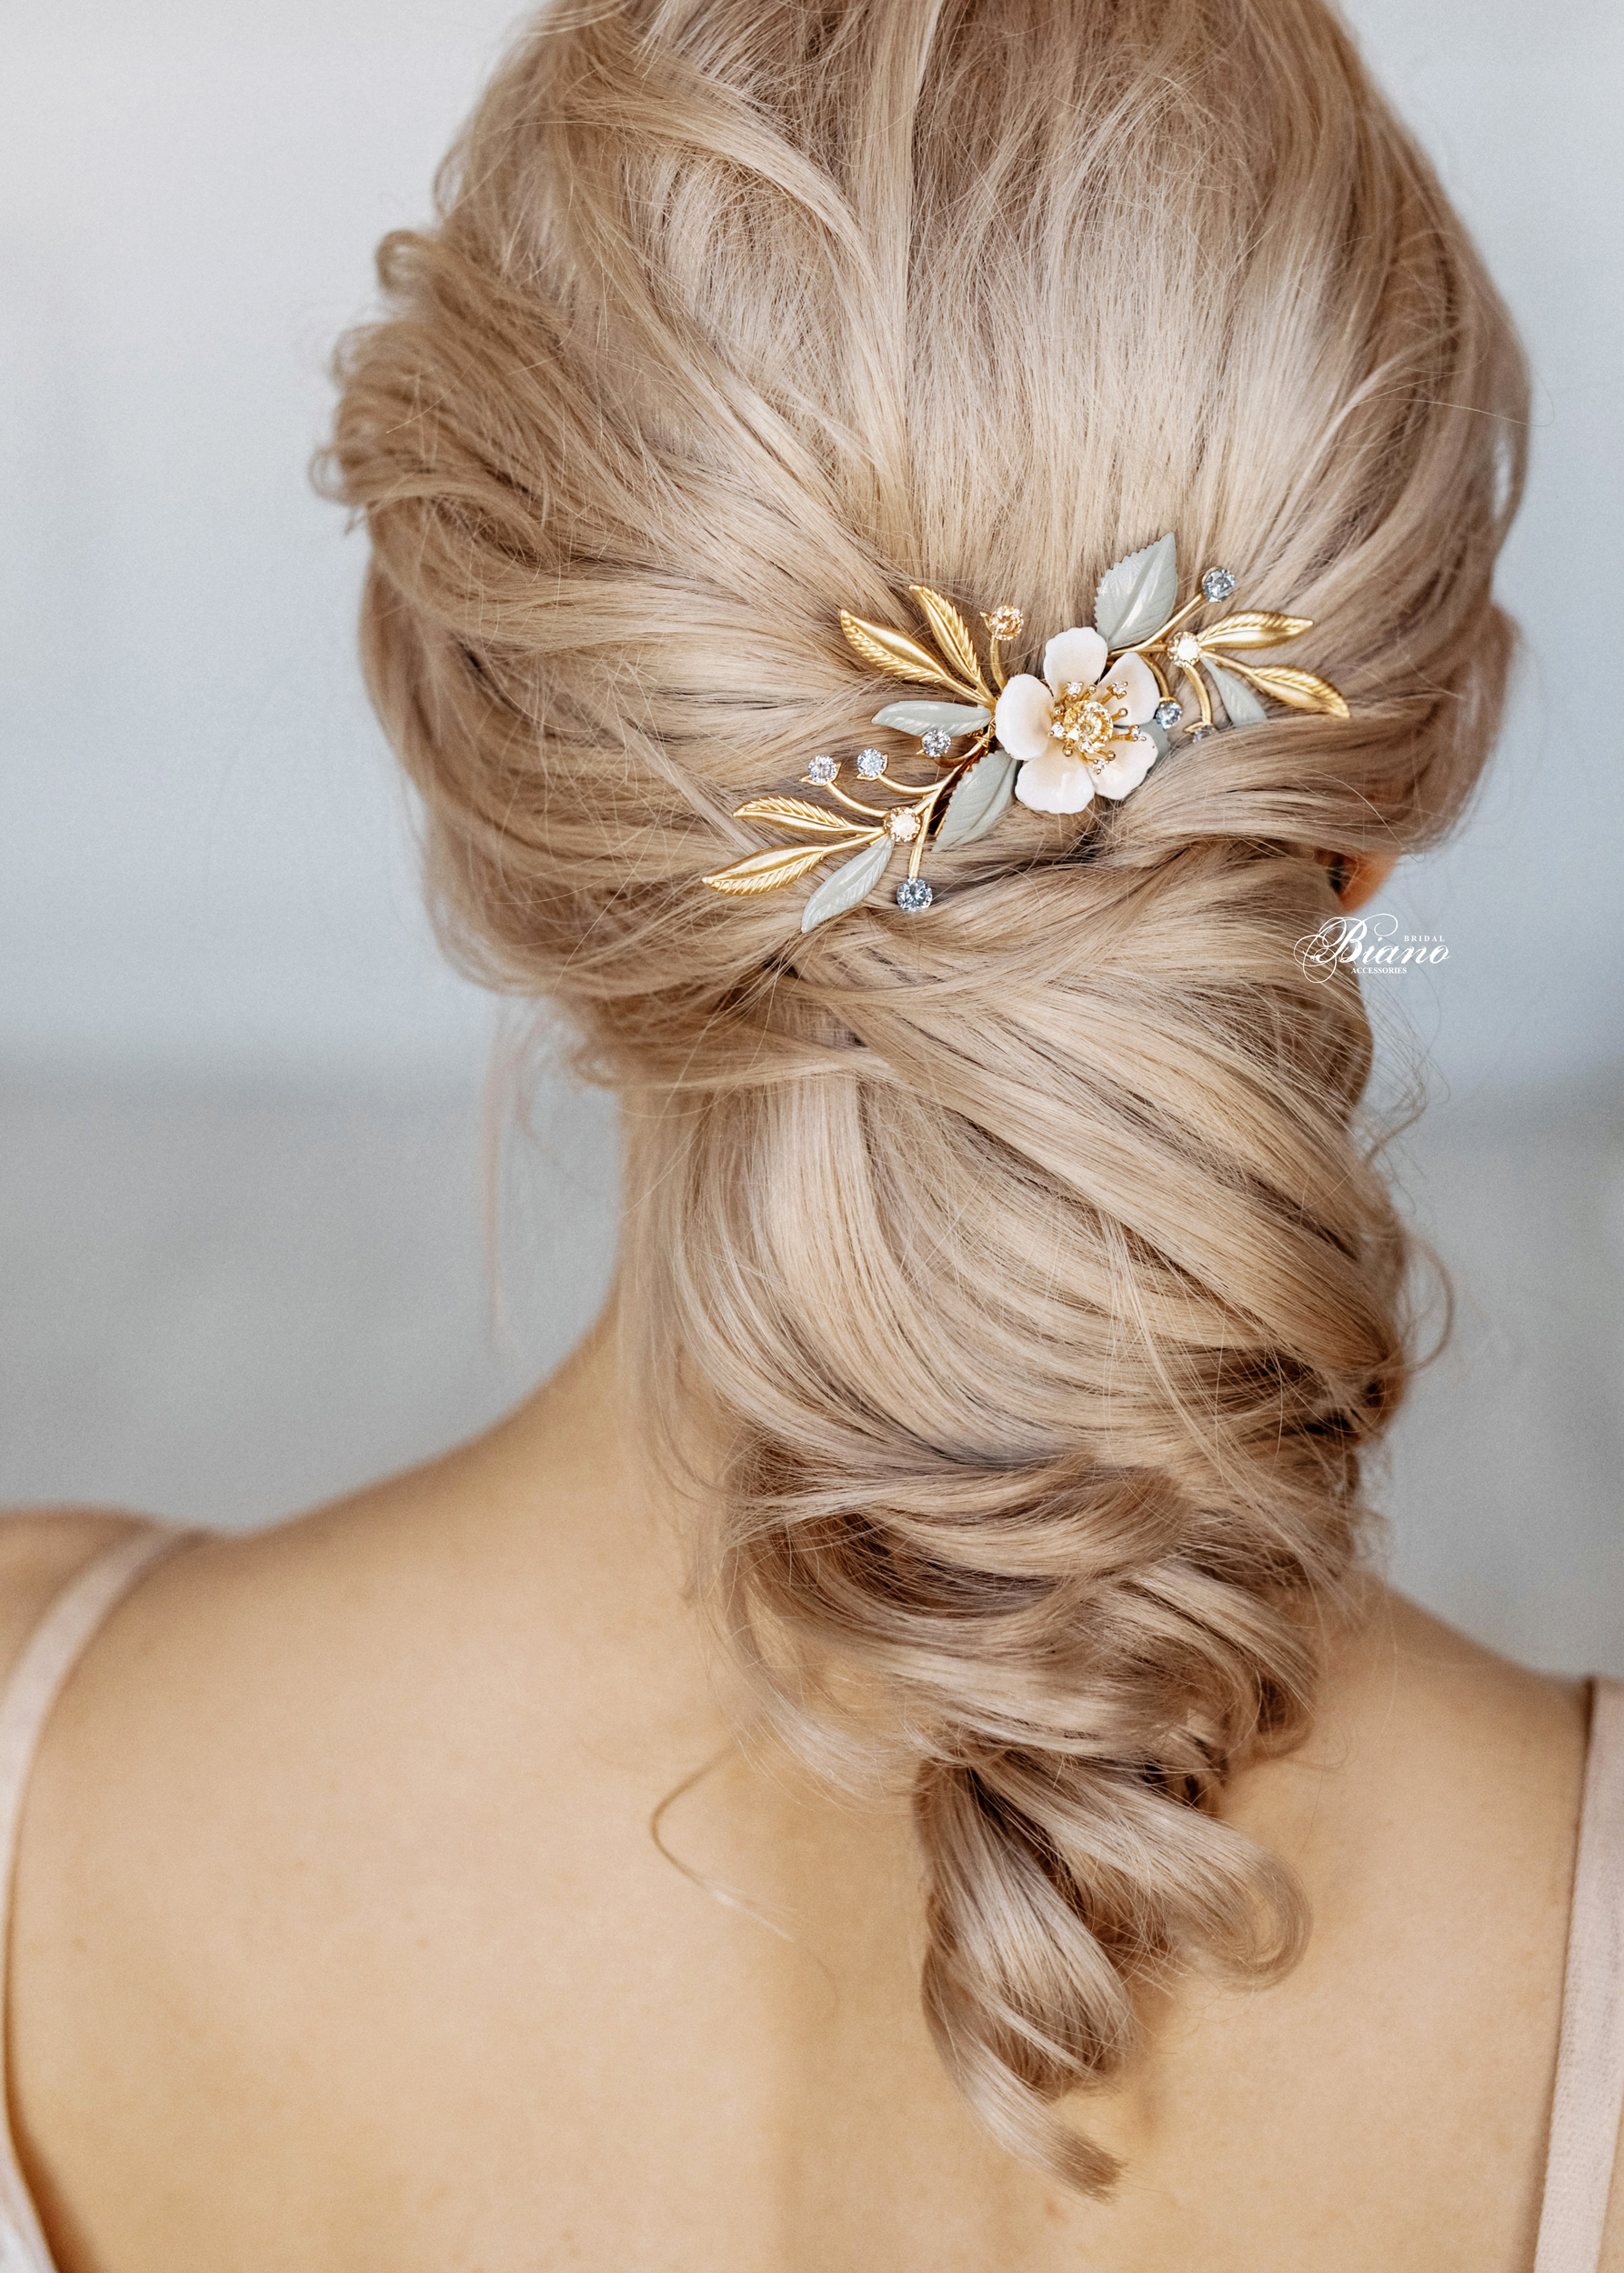 Find your perfect Wedding Comb - Handmade in SwitzerlandUnique DesignPossibility to Rush OrdersFree Shipping WorldwideCustomisable OrdersFast response on your questions